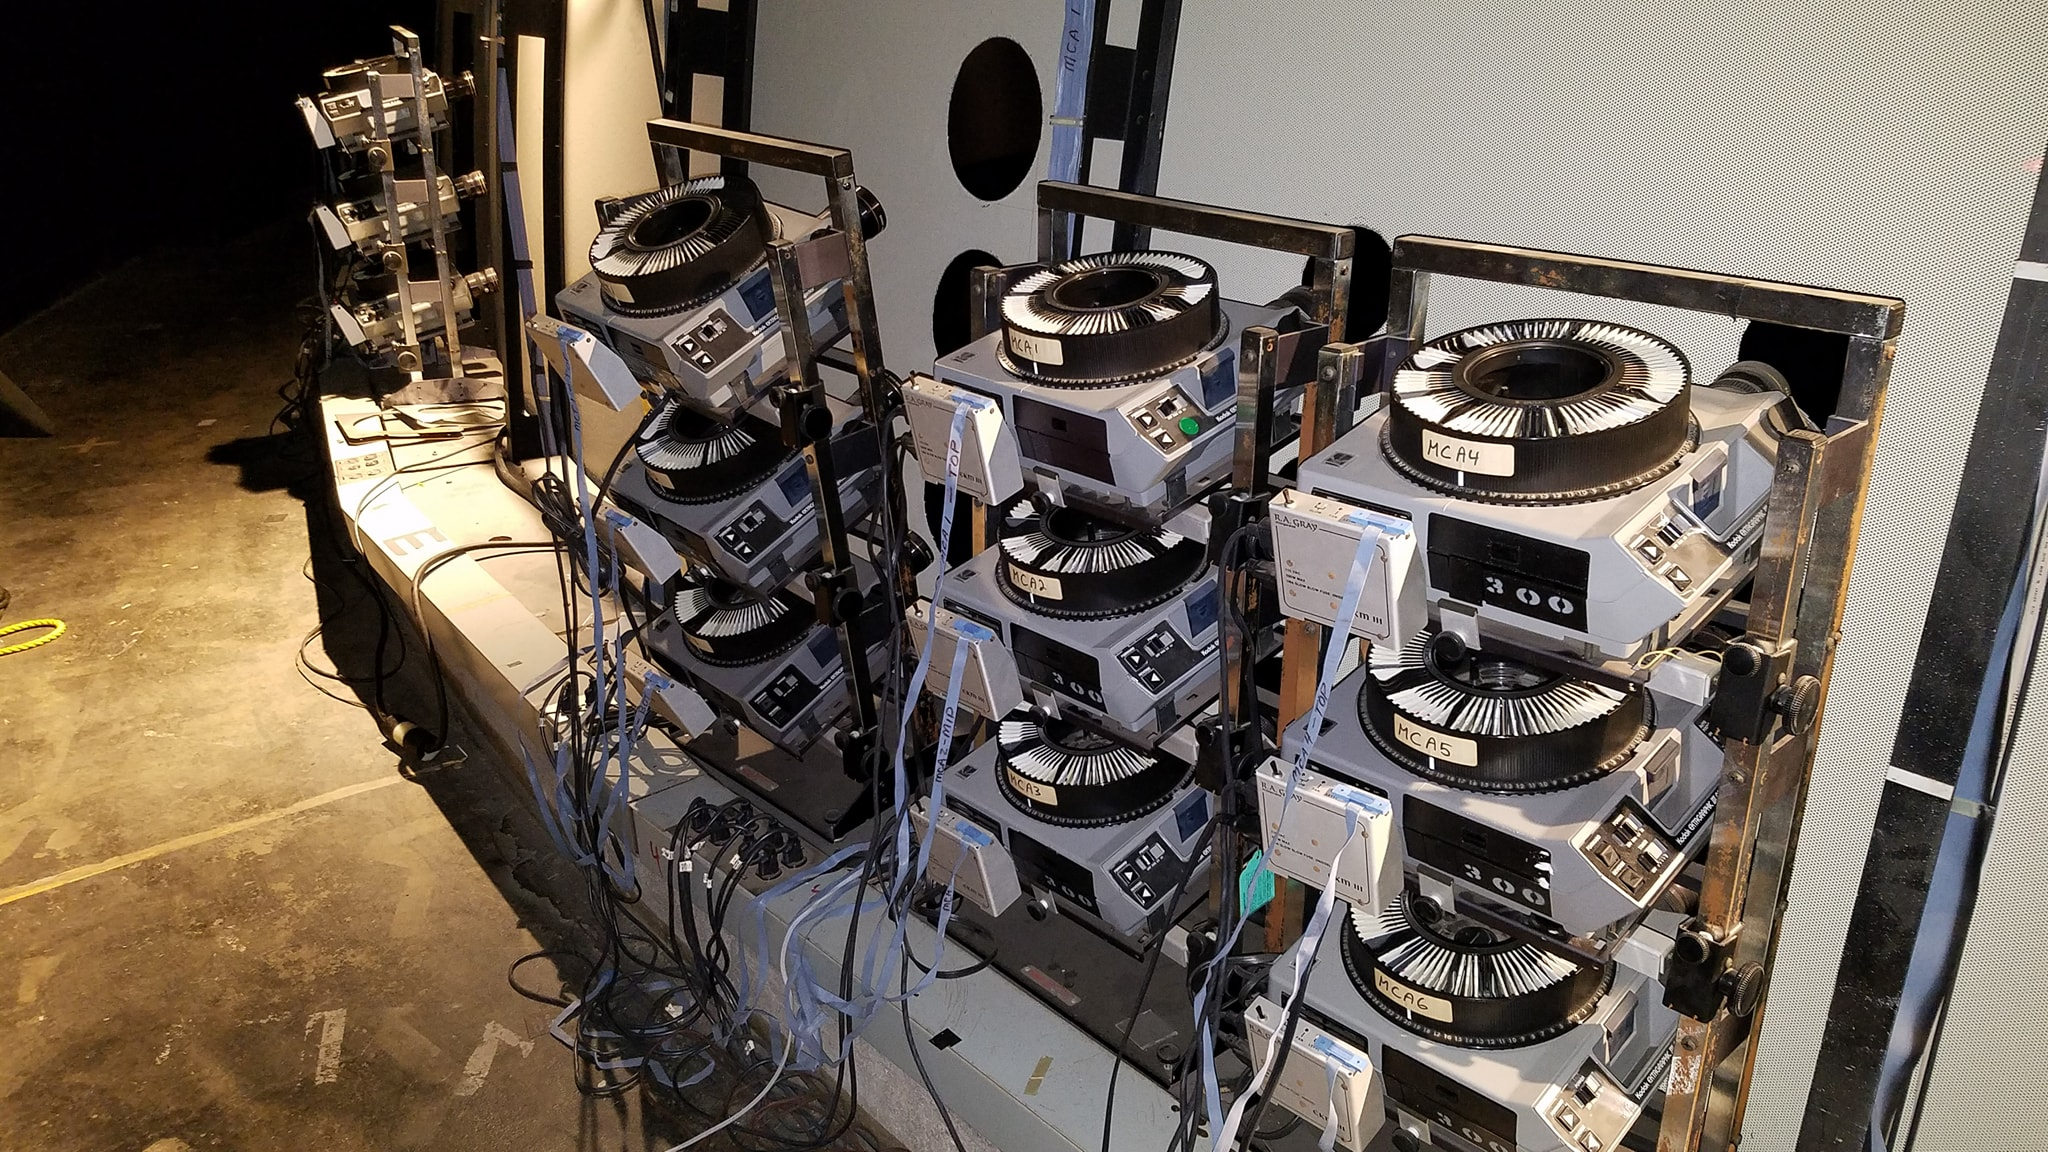 Kodak slide projectors in Planetarium